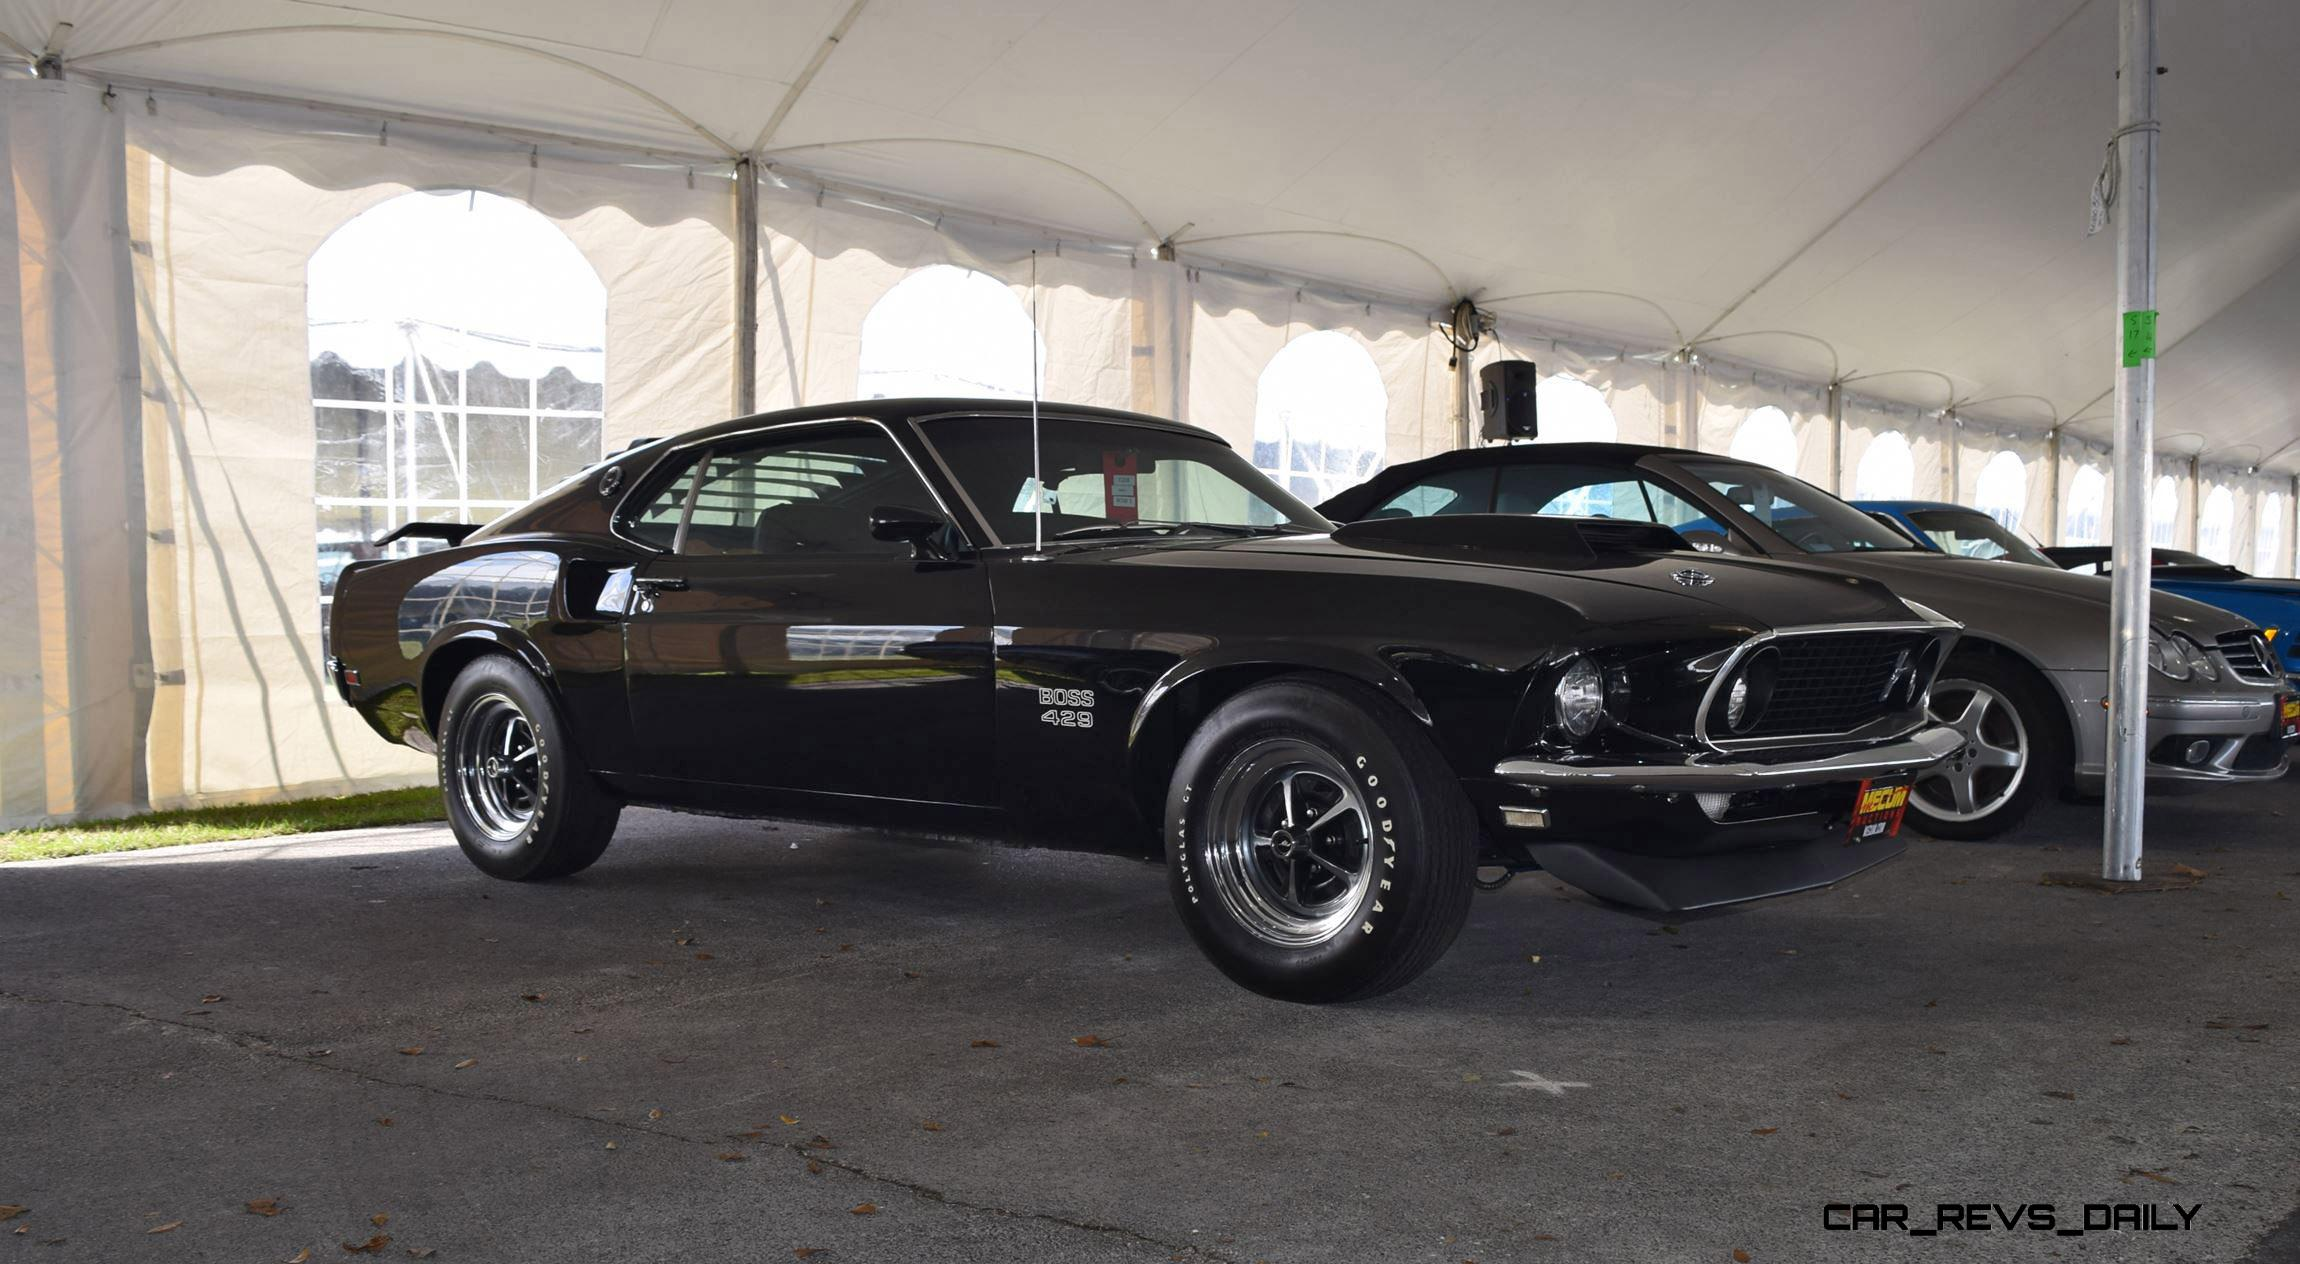 mecum 2016 florida favorites 1969 ford mustang boss 429 in raven black. Black Bedroom Furniture Sets. Home Design Ideas